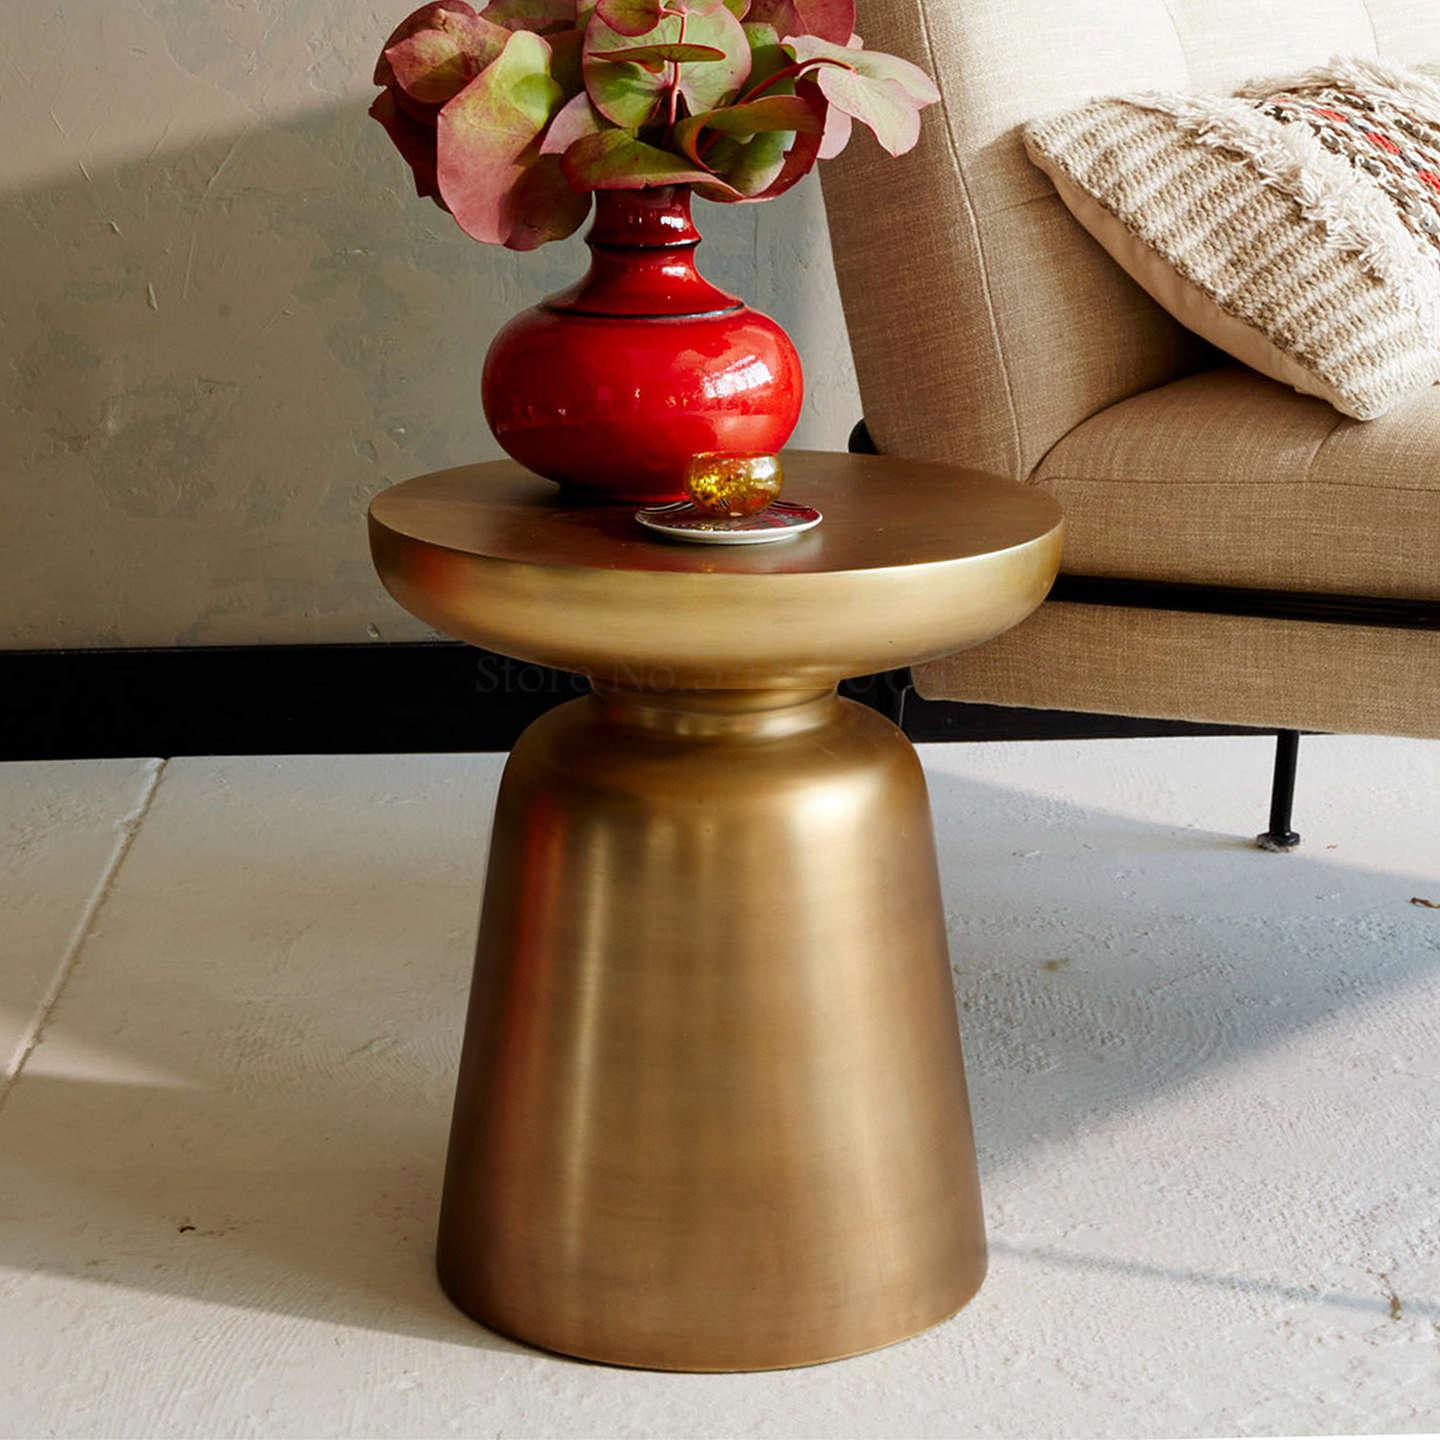 Sofa Bed Bedroom Bedside Table Small Table Side Table Light Luxury Metal Round Table Creative Removable Small Coffee Table Corne